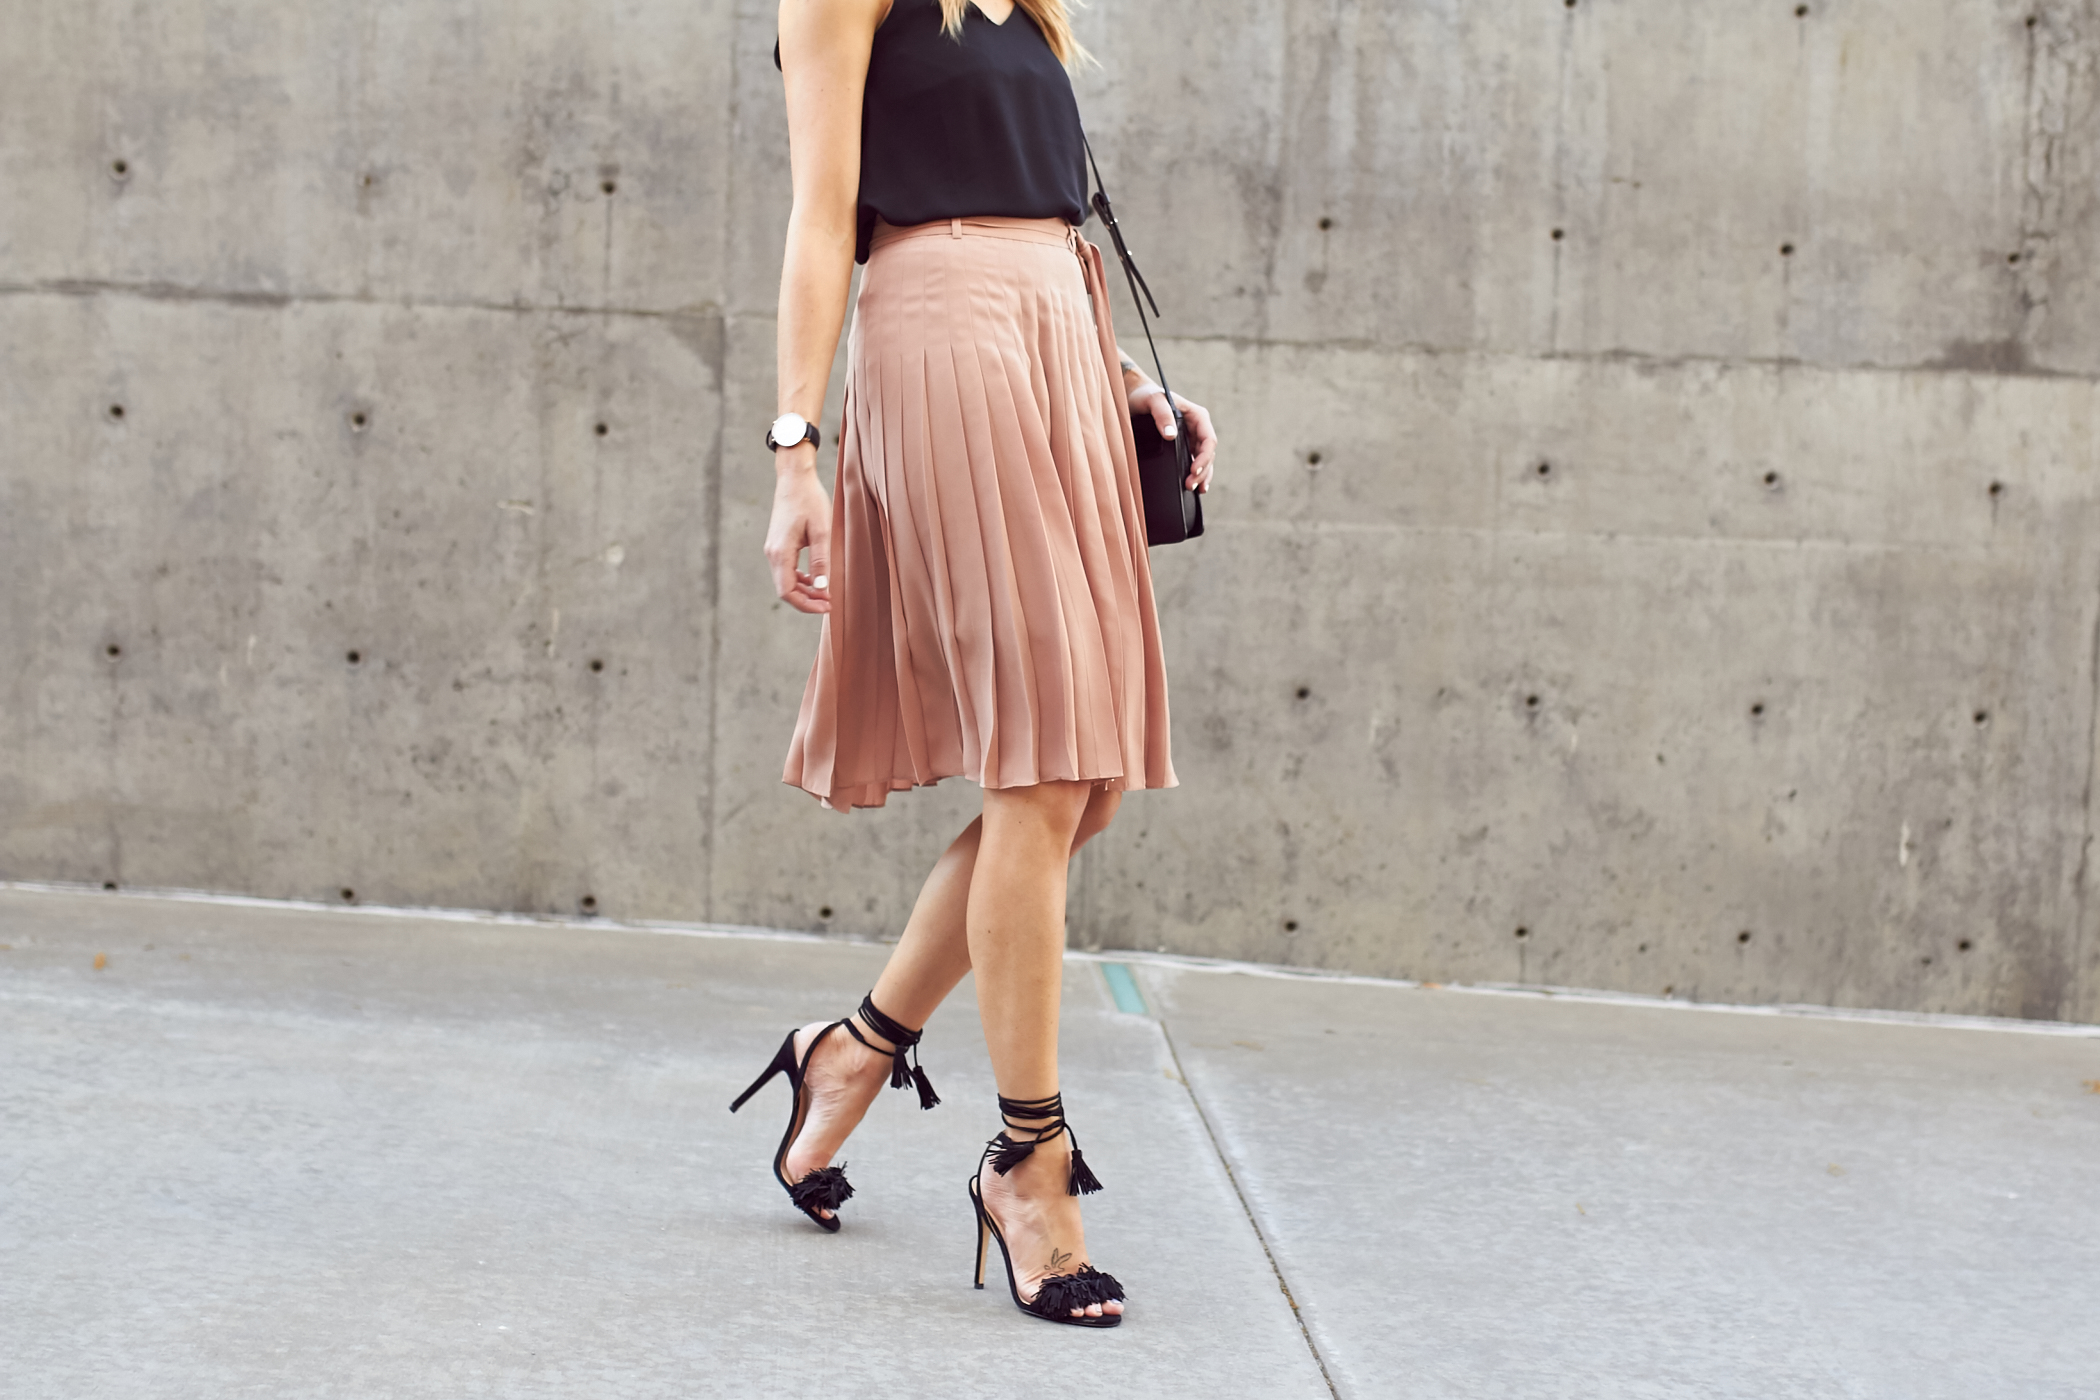 fashion-jackson-ann-taylor-pink-pleated-skirt-black-fringe-wild-thing-sandals-heels